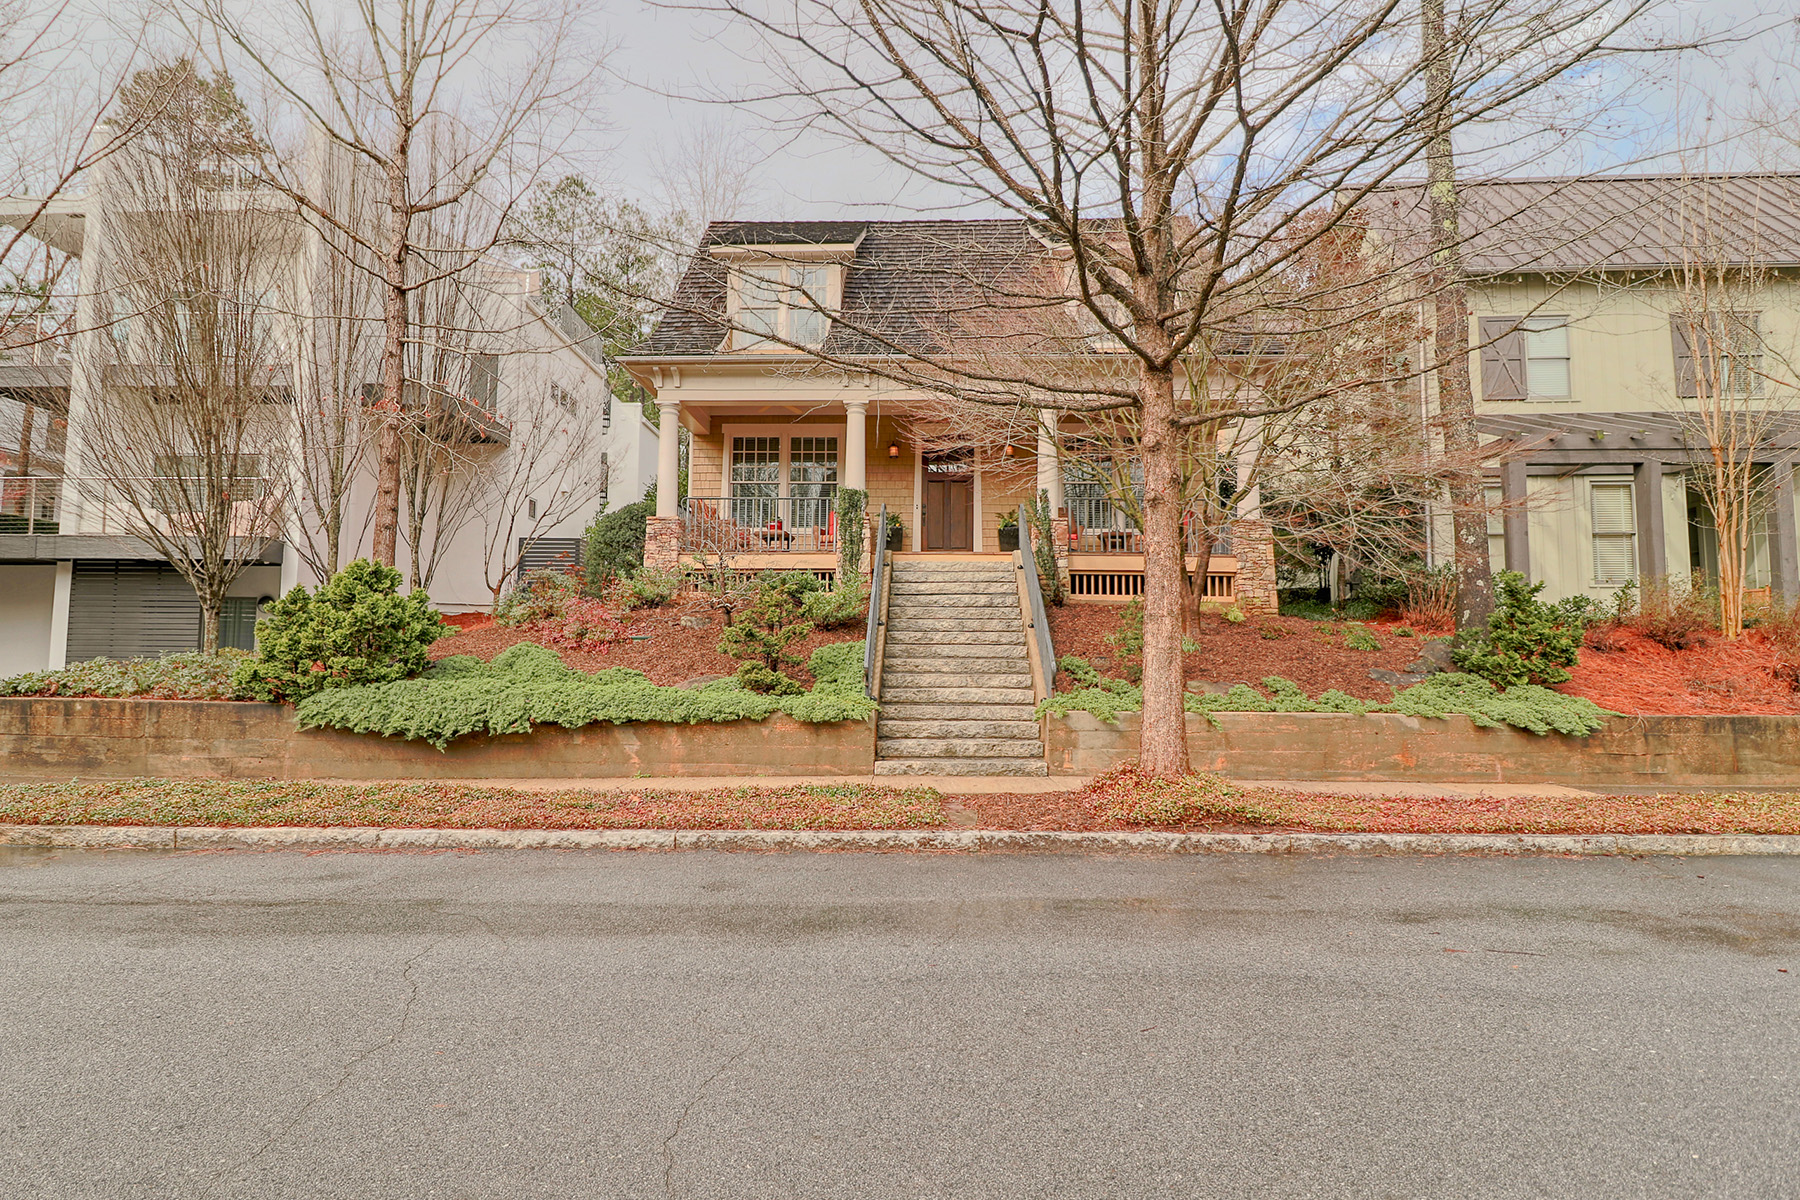 Single Family Homes for Active at Craftsman Style Home in Original Section of Serenbe Community 9048 Selborne Lane Chattahoochee Hills, Georgia 30268 United States